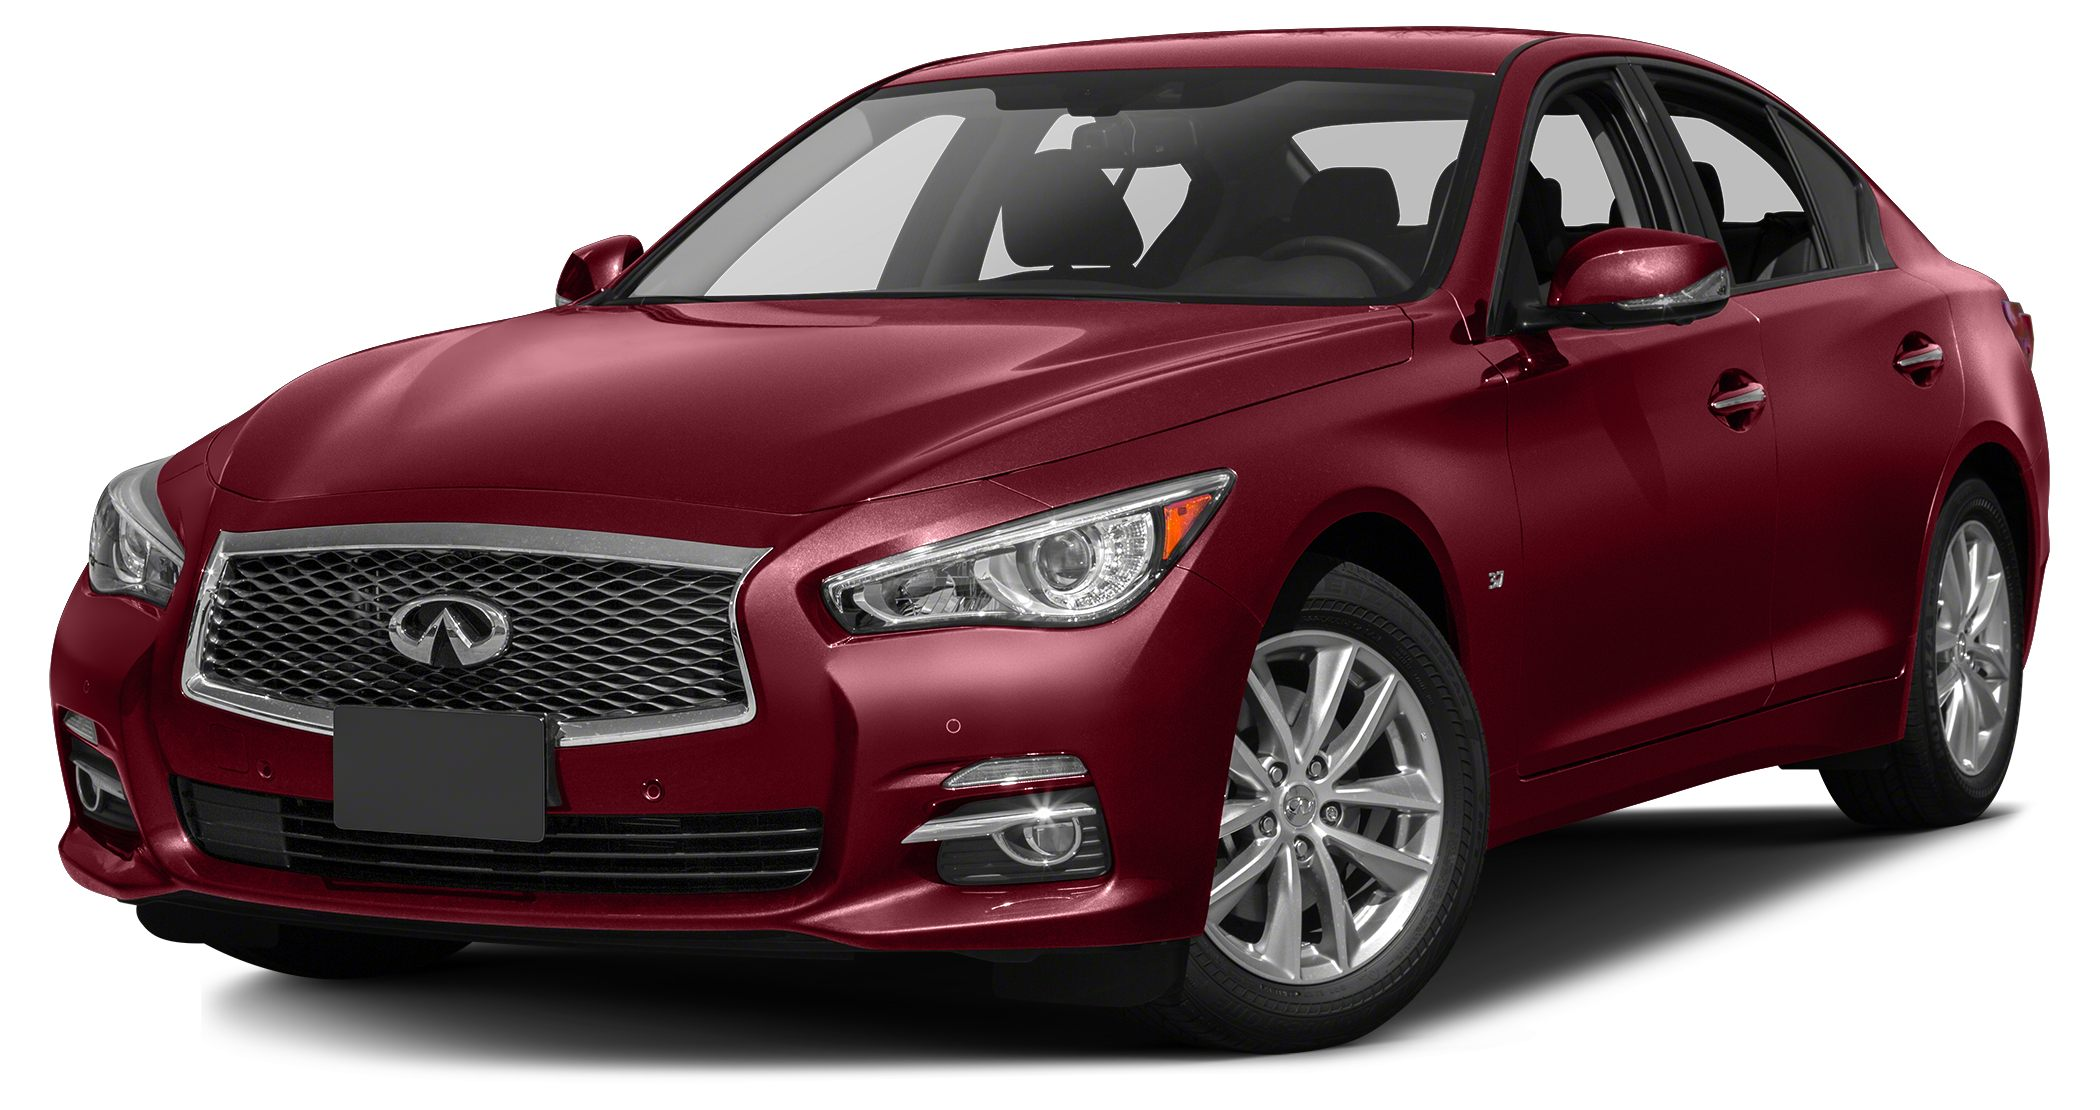 2014 Infiniti Q50 Premium Certified Clean Carfax AWD - Power Sunroof - Premium Leather Seats - Na